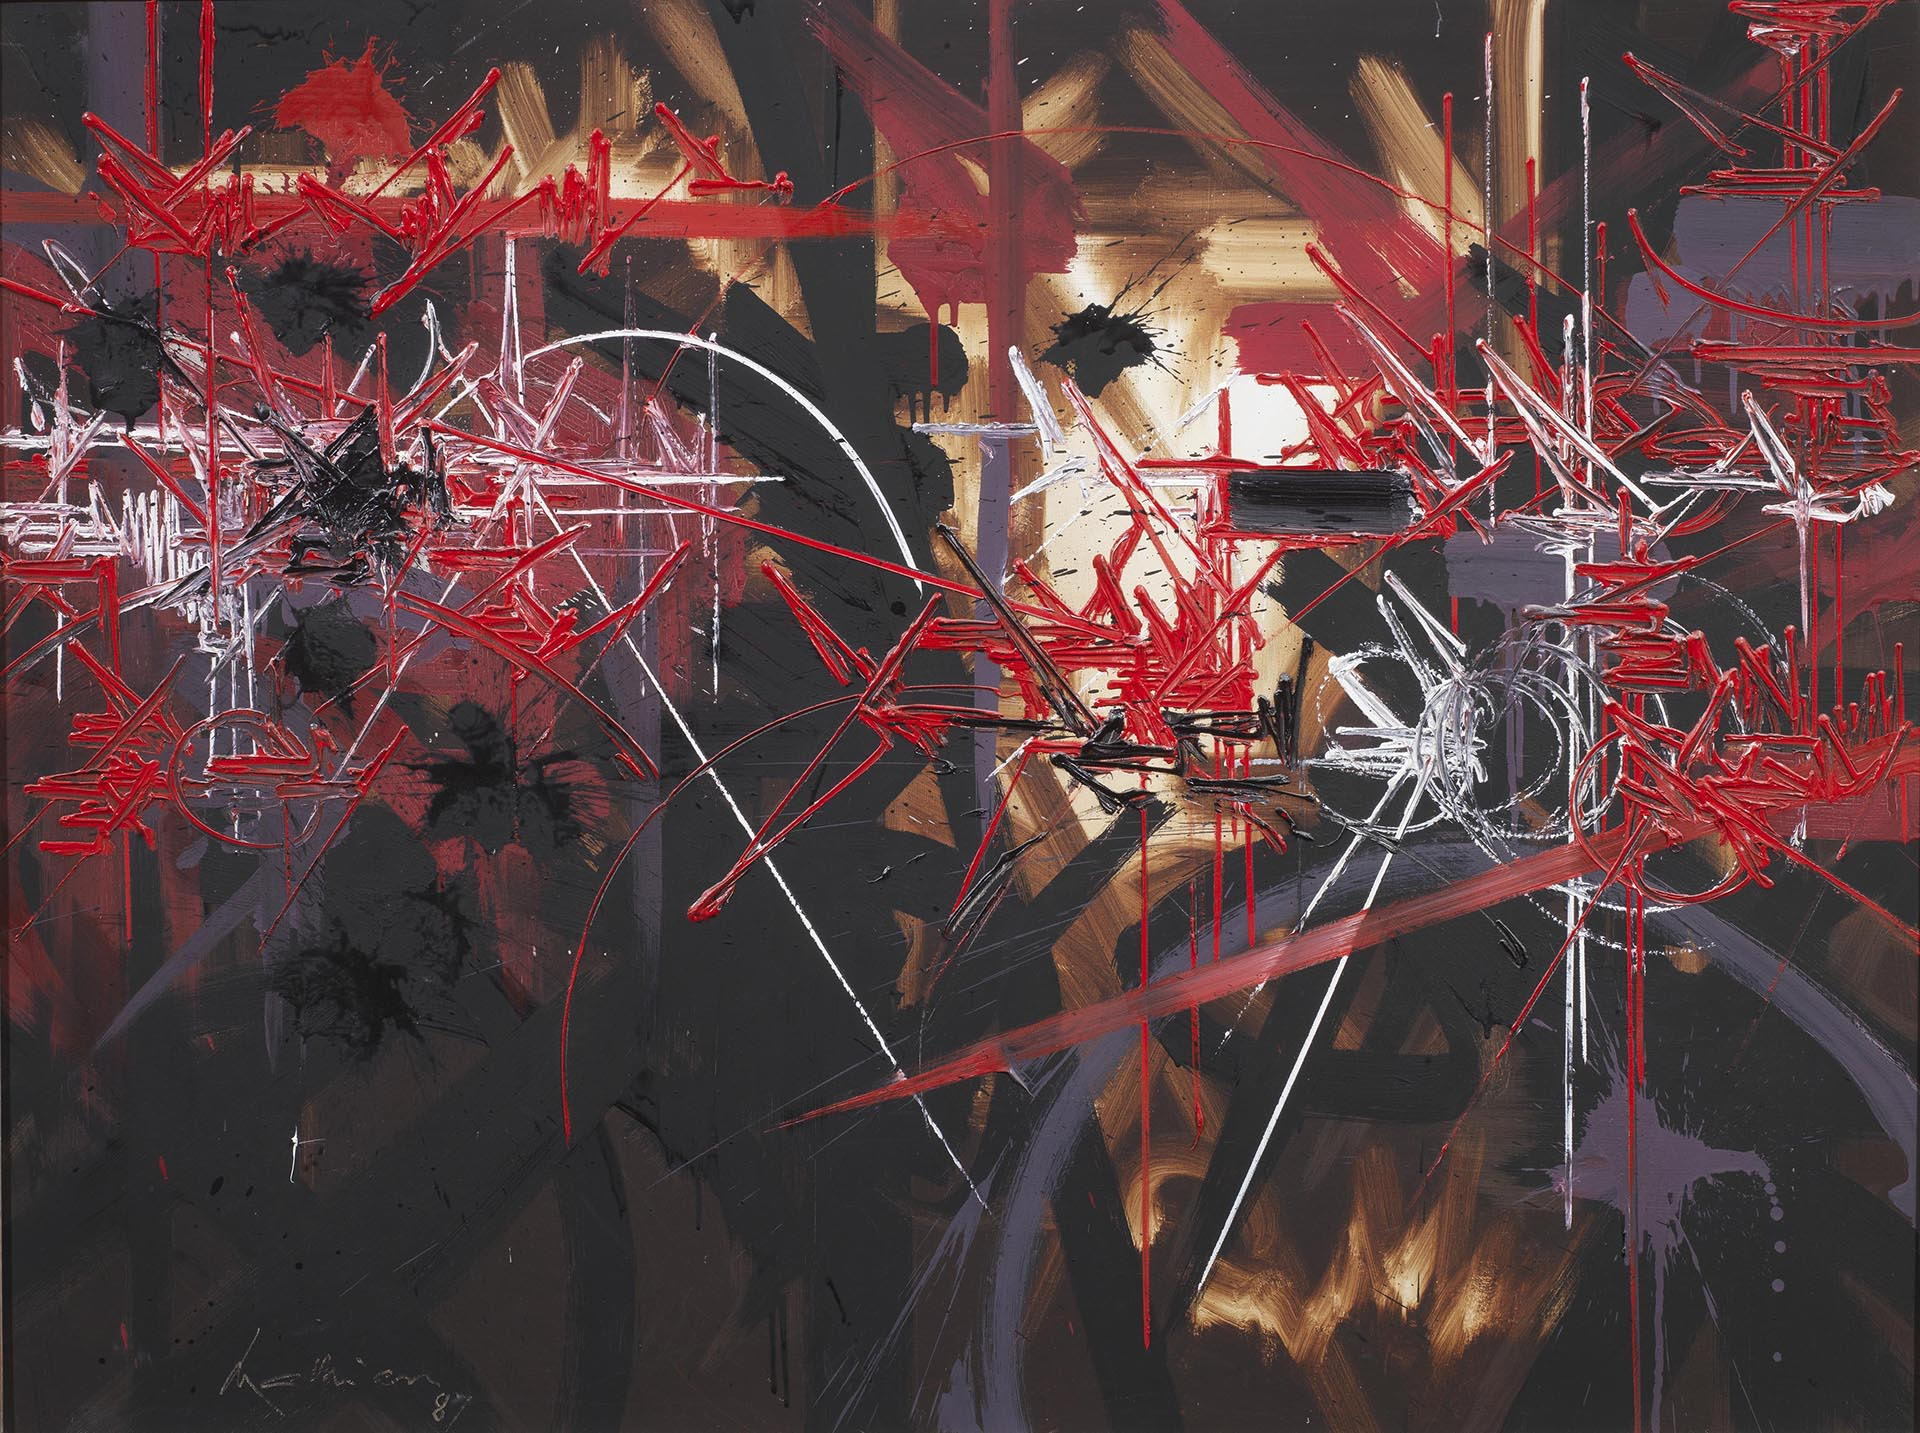 Mathieu, Certitude vindicative, 1987, 97x130 cm